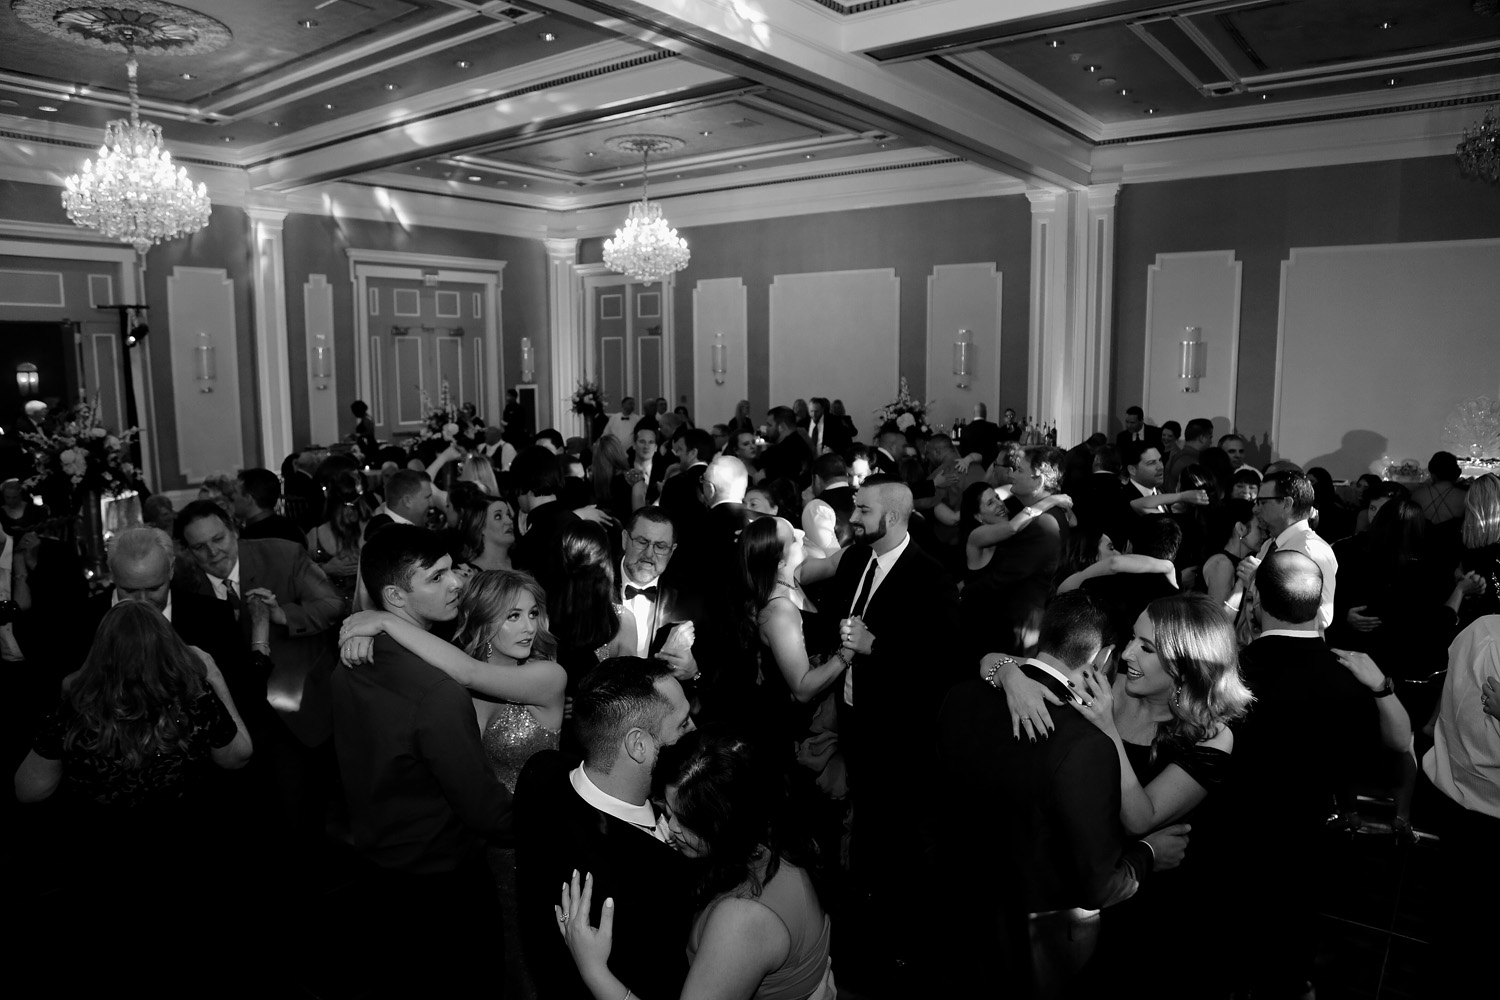 Guests packed the Royal Sonesta's ballroom dance floor and partied til the stroke of midnight!